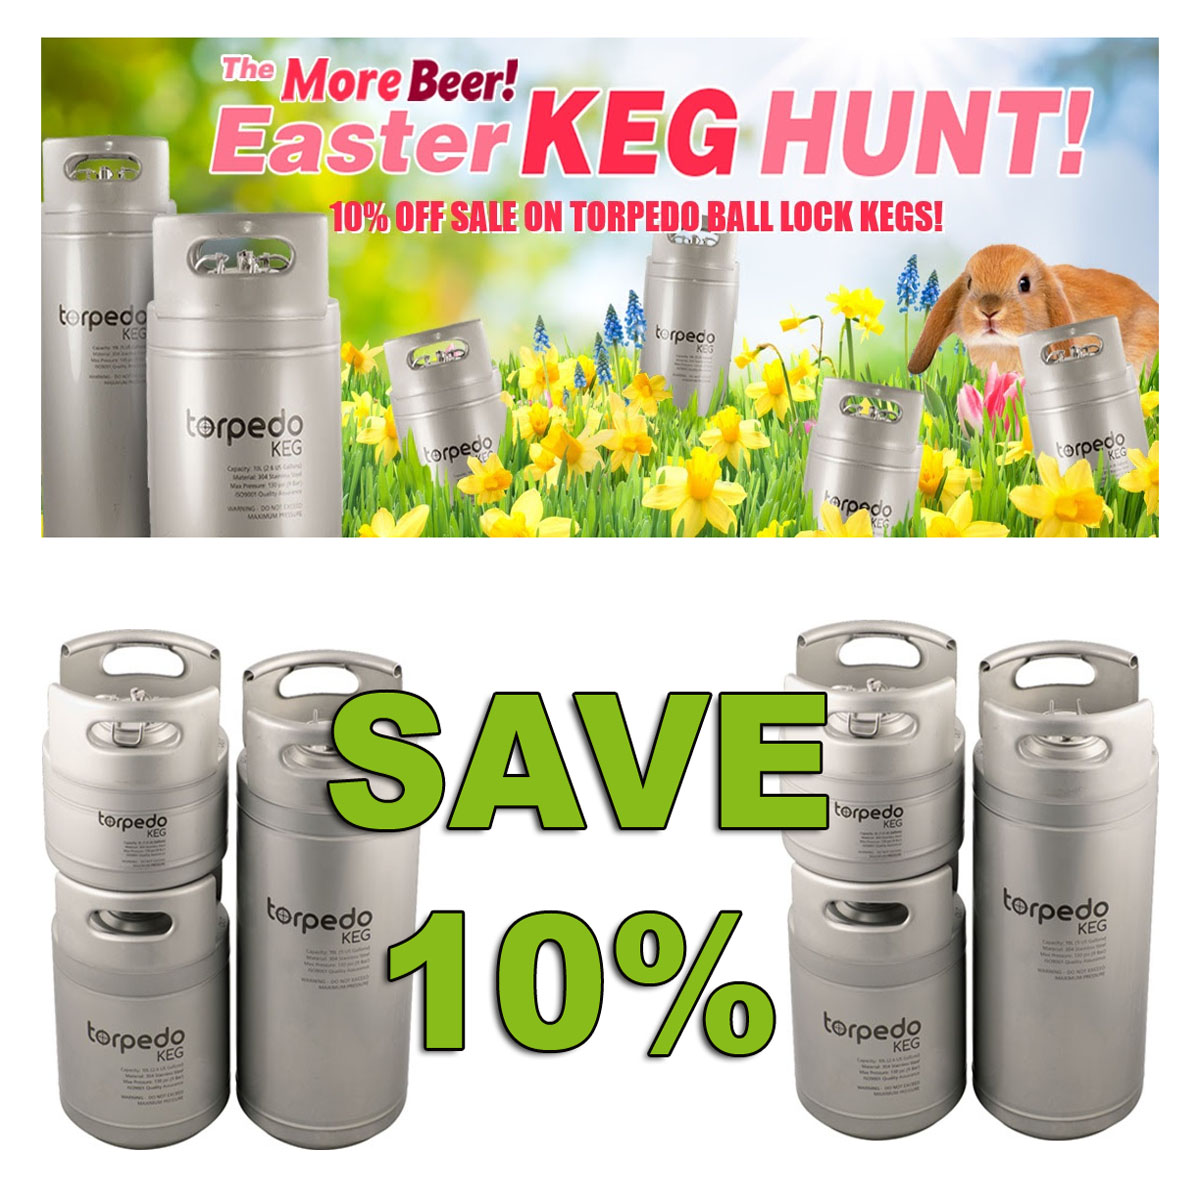 Save 10% On Torpedo Kegs with this More Beer Coupon Code Coupon Code